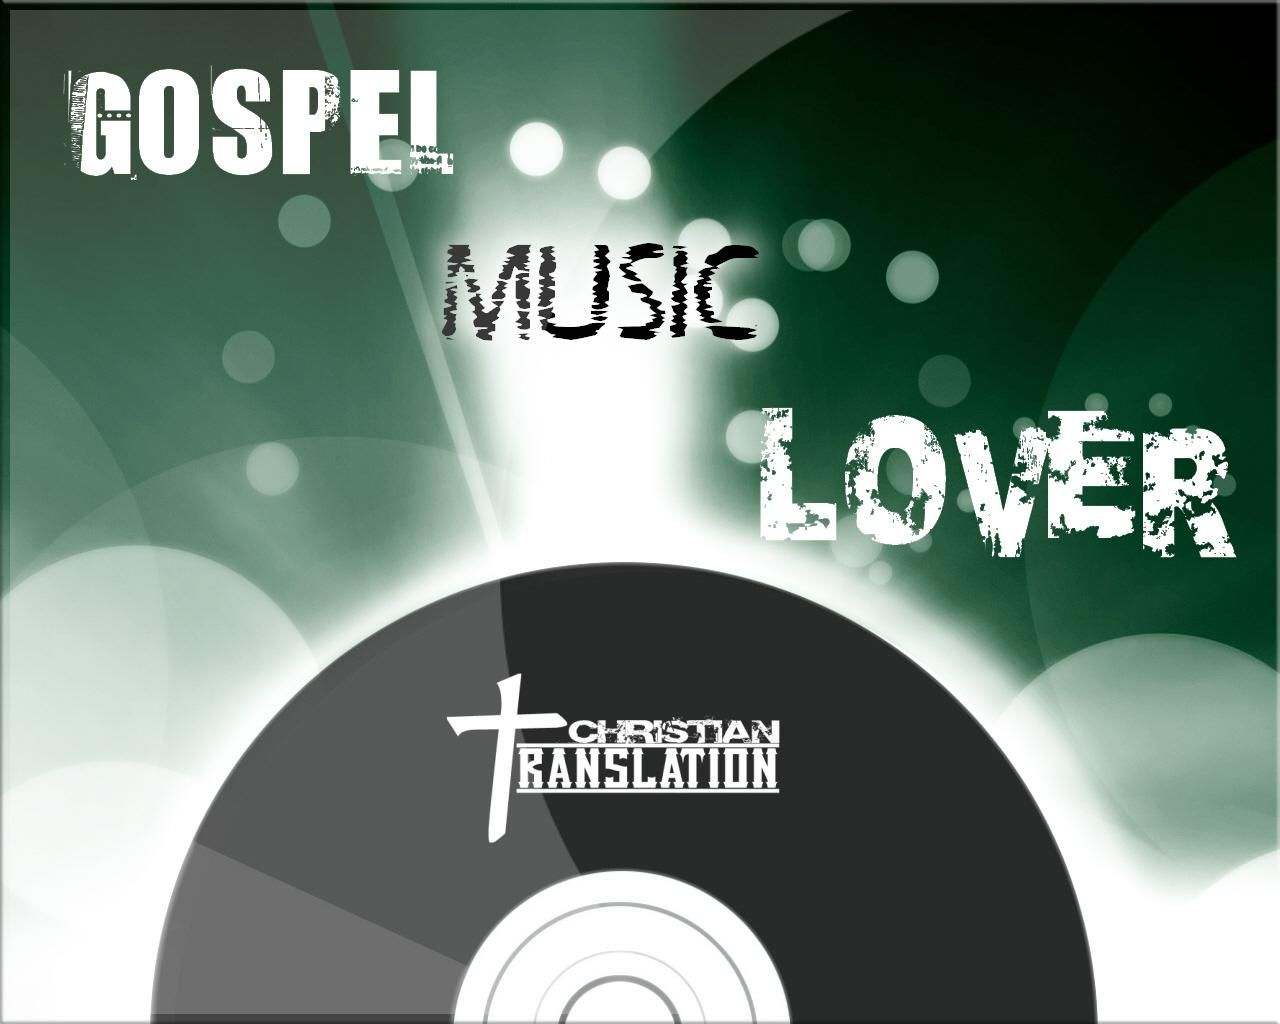 Gospel Music Wallpaper